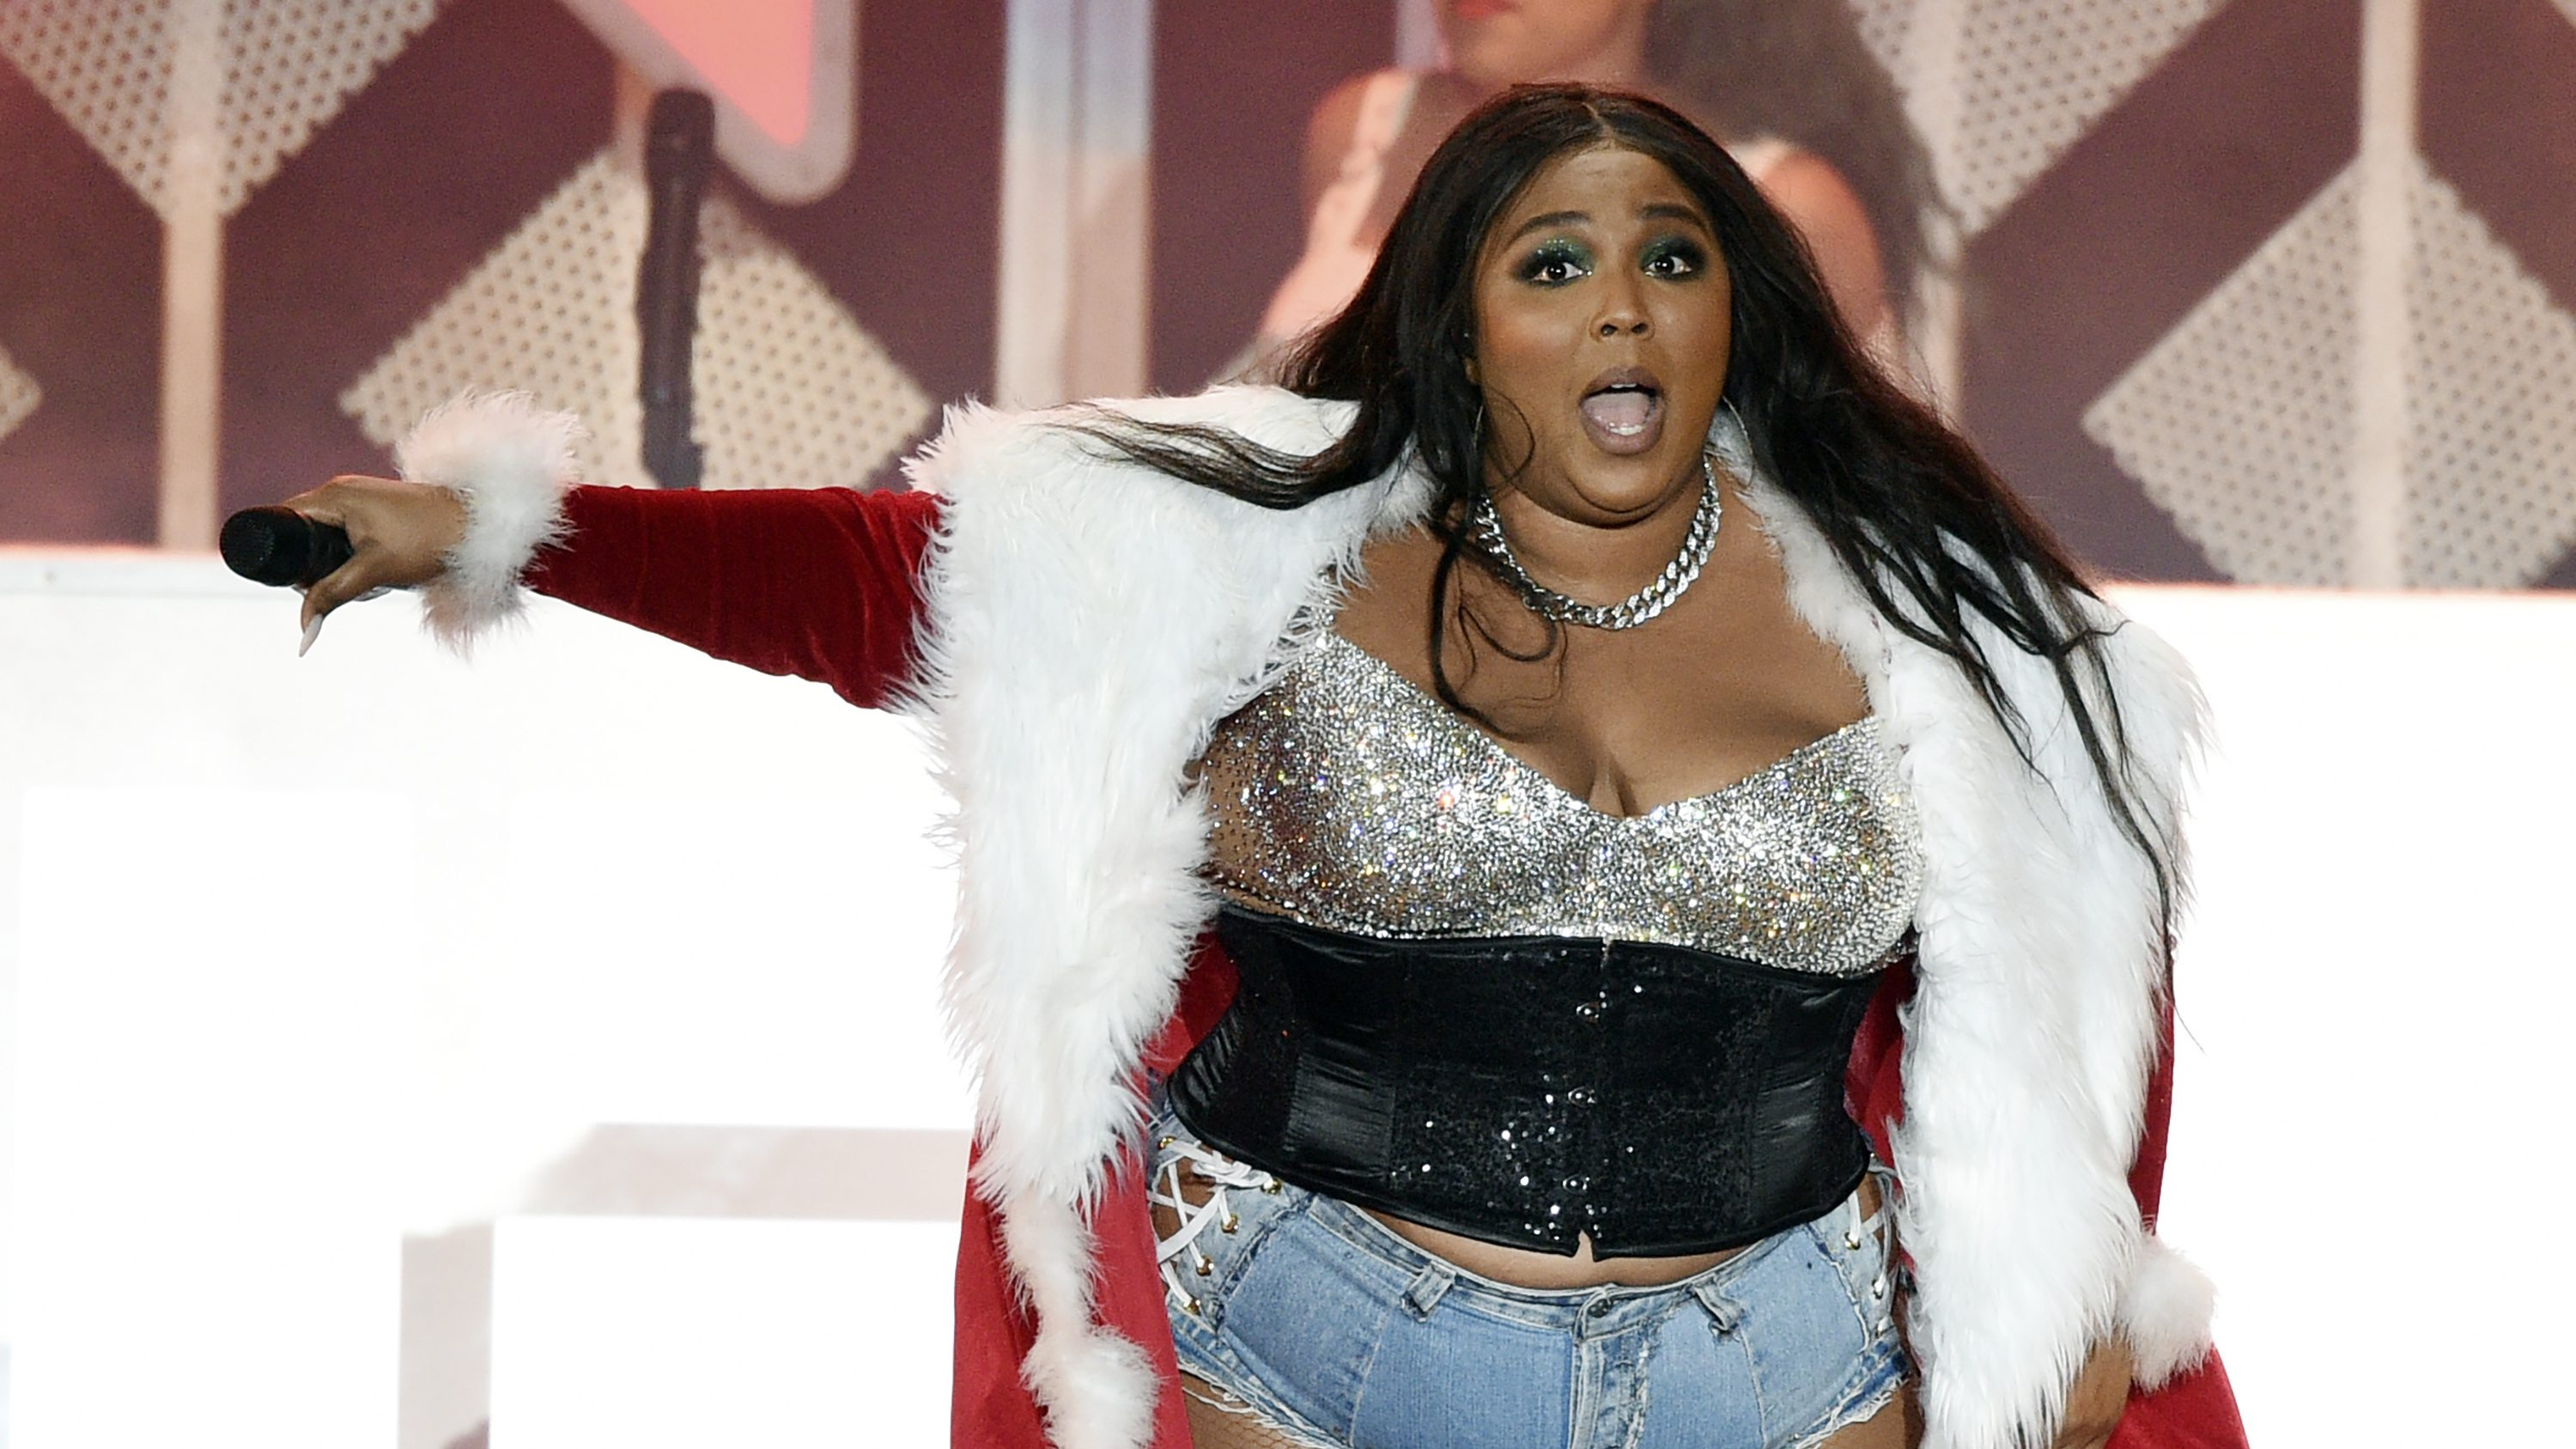 Lizzo claps back with gratitude after twerking controversy